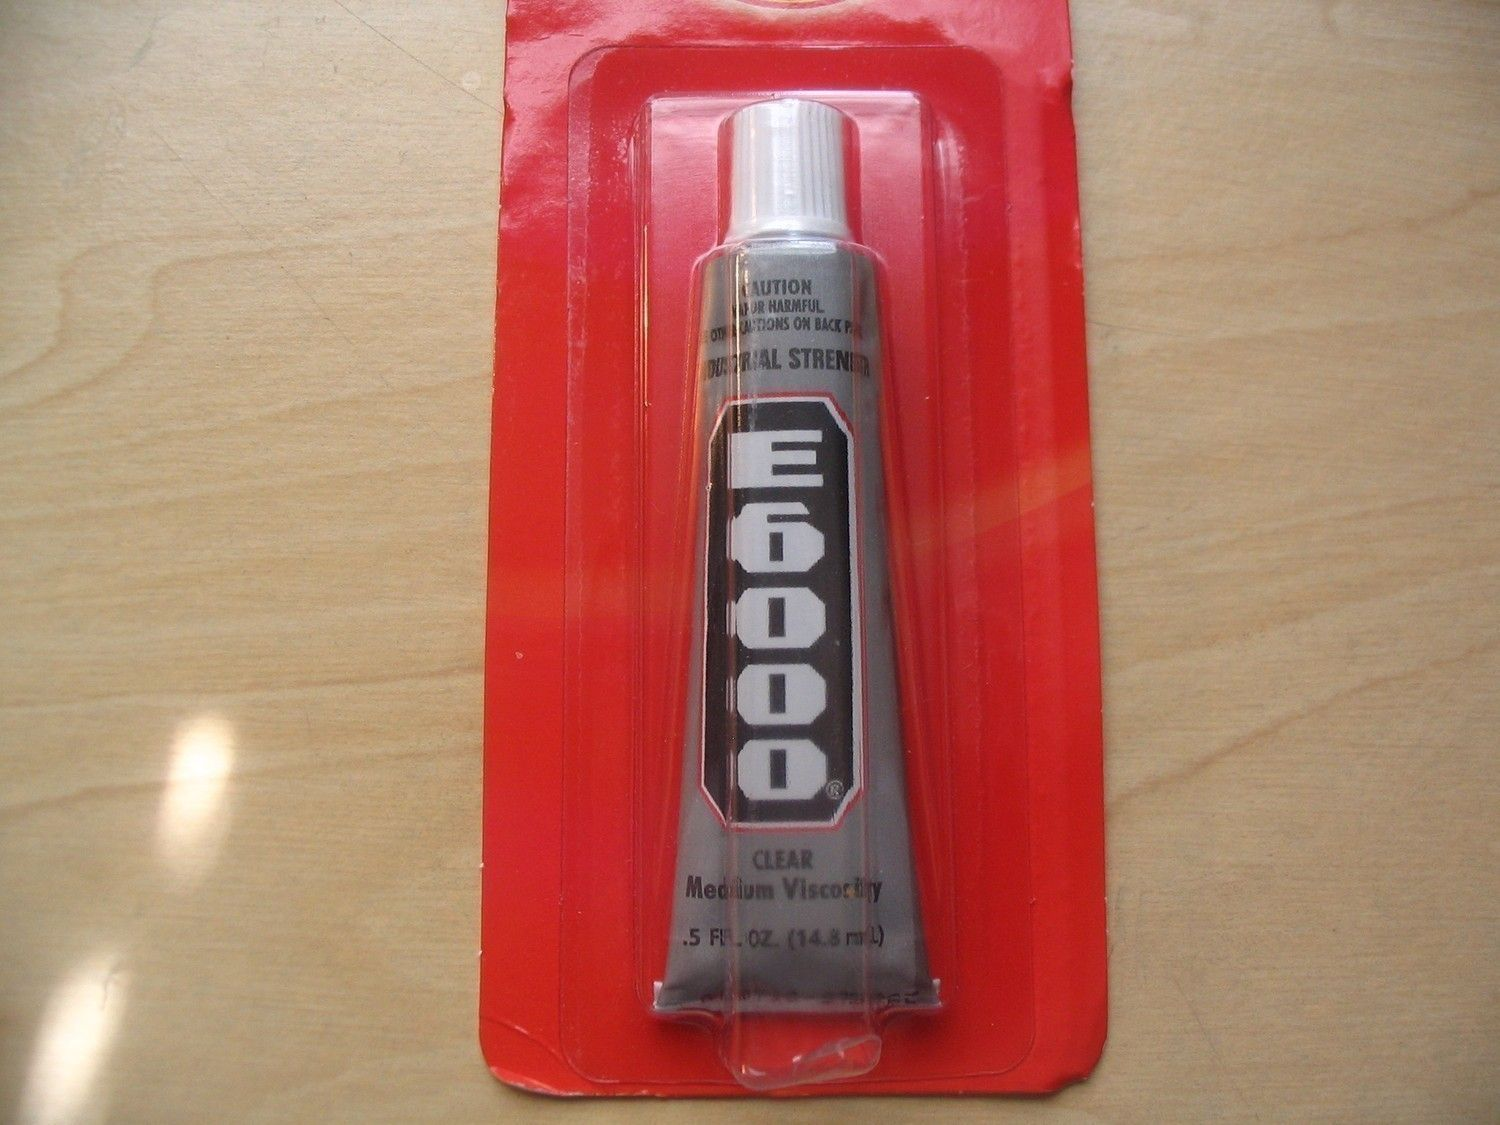 E6000 Adhesive 1/2 oz tube. Great for adhering magnets, bails, securing tiles or cabochons in the pendant trays, and much more!